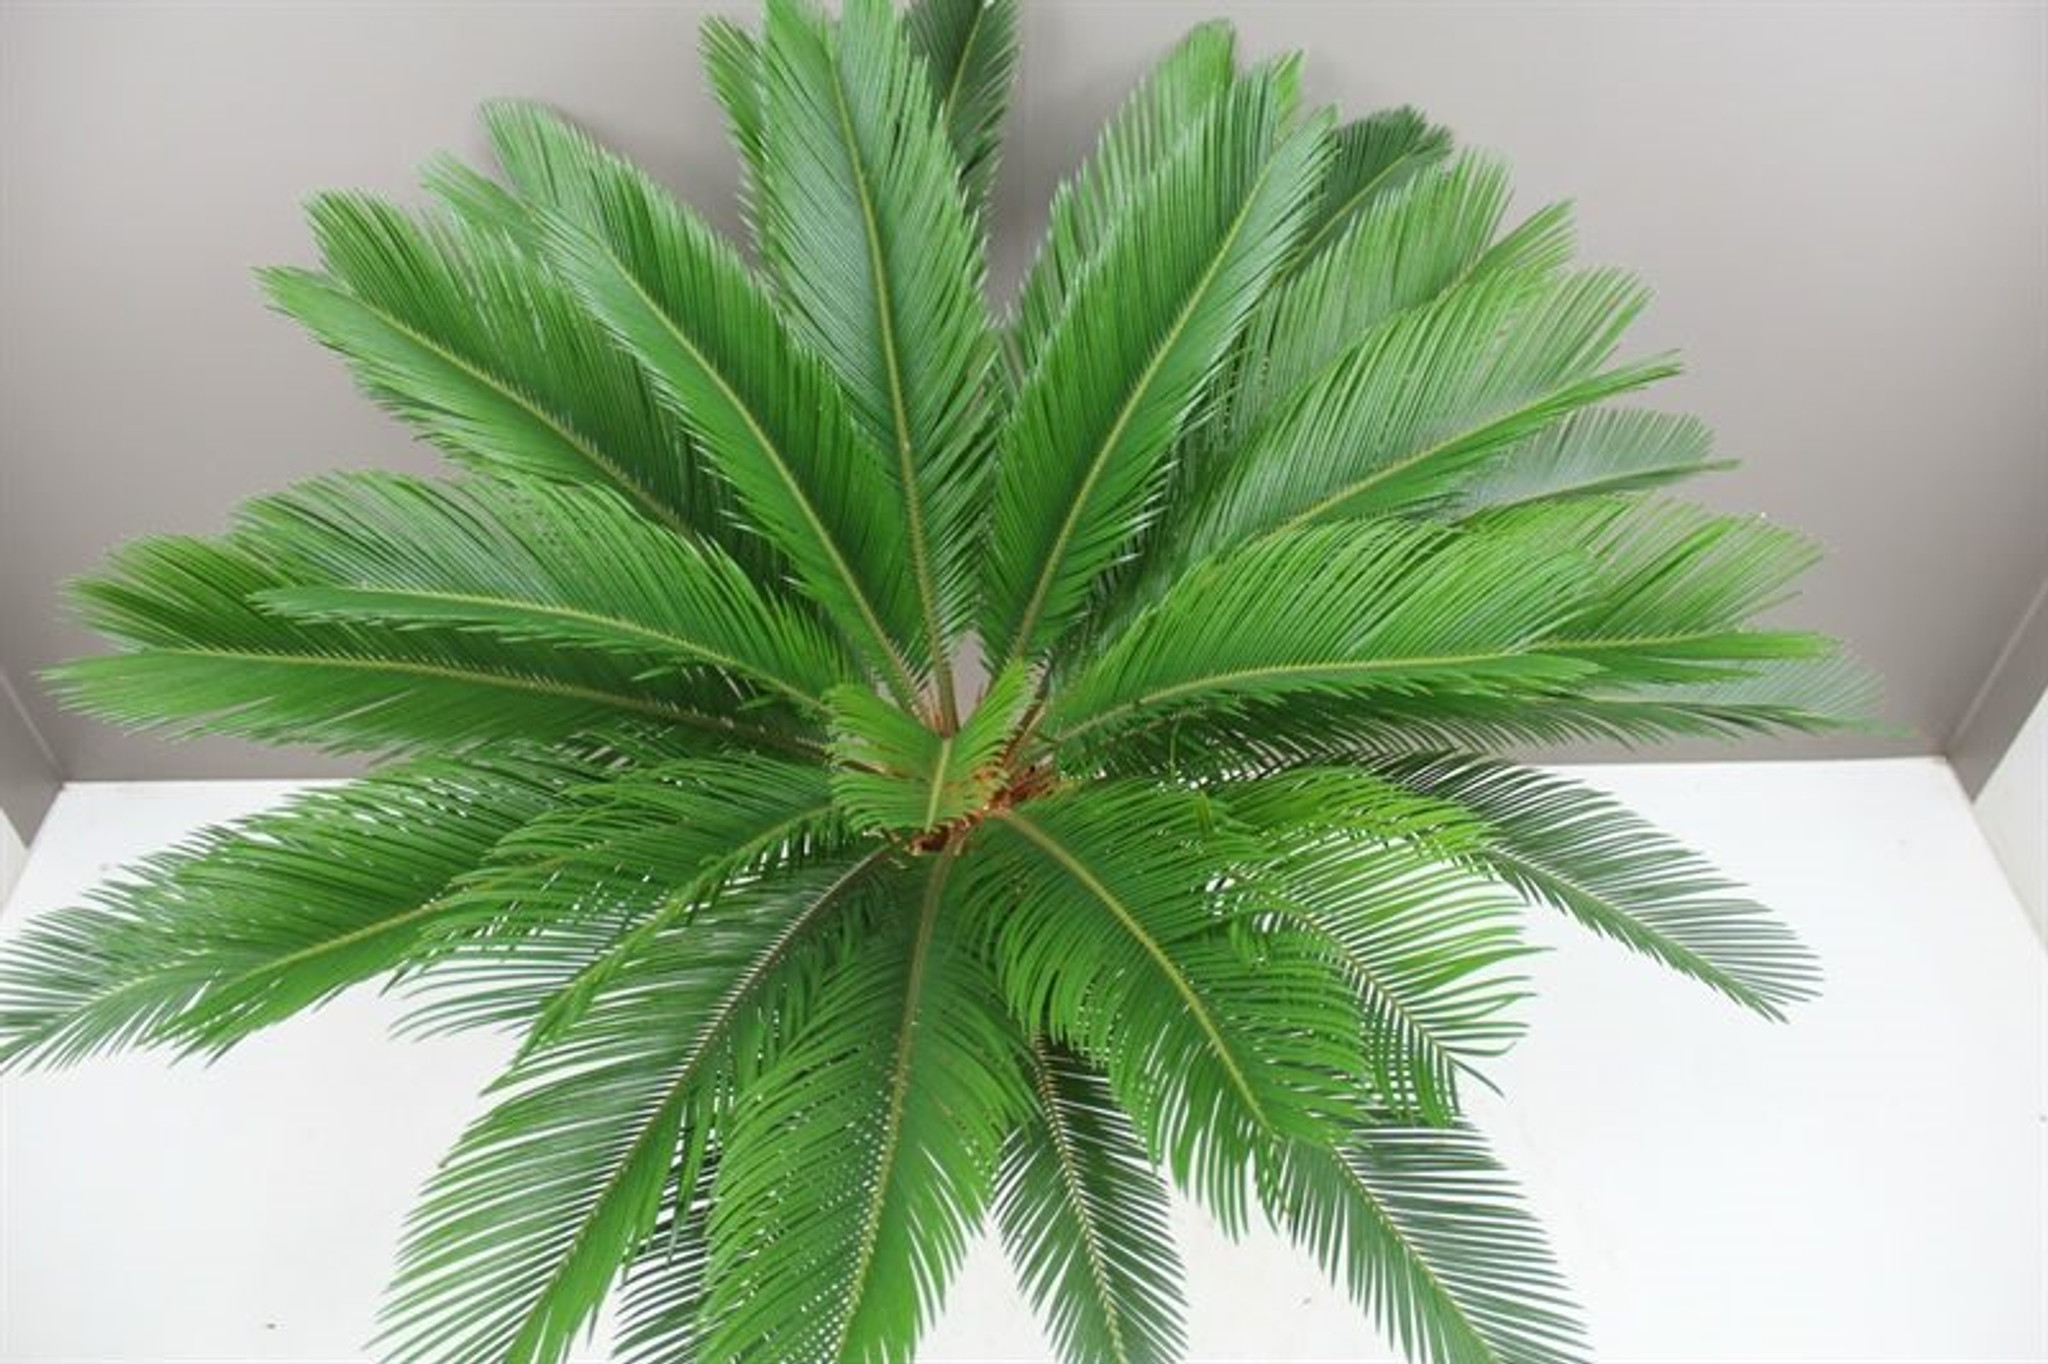 Japanese Sago Palm leaves